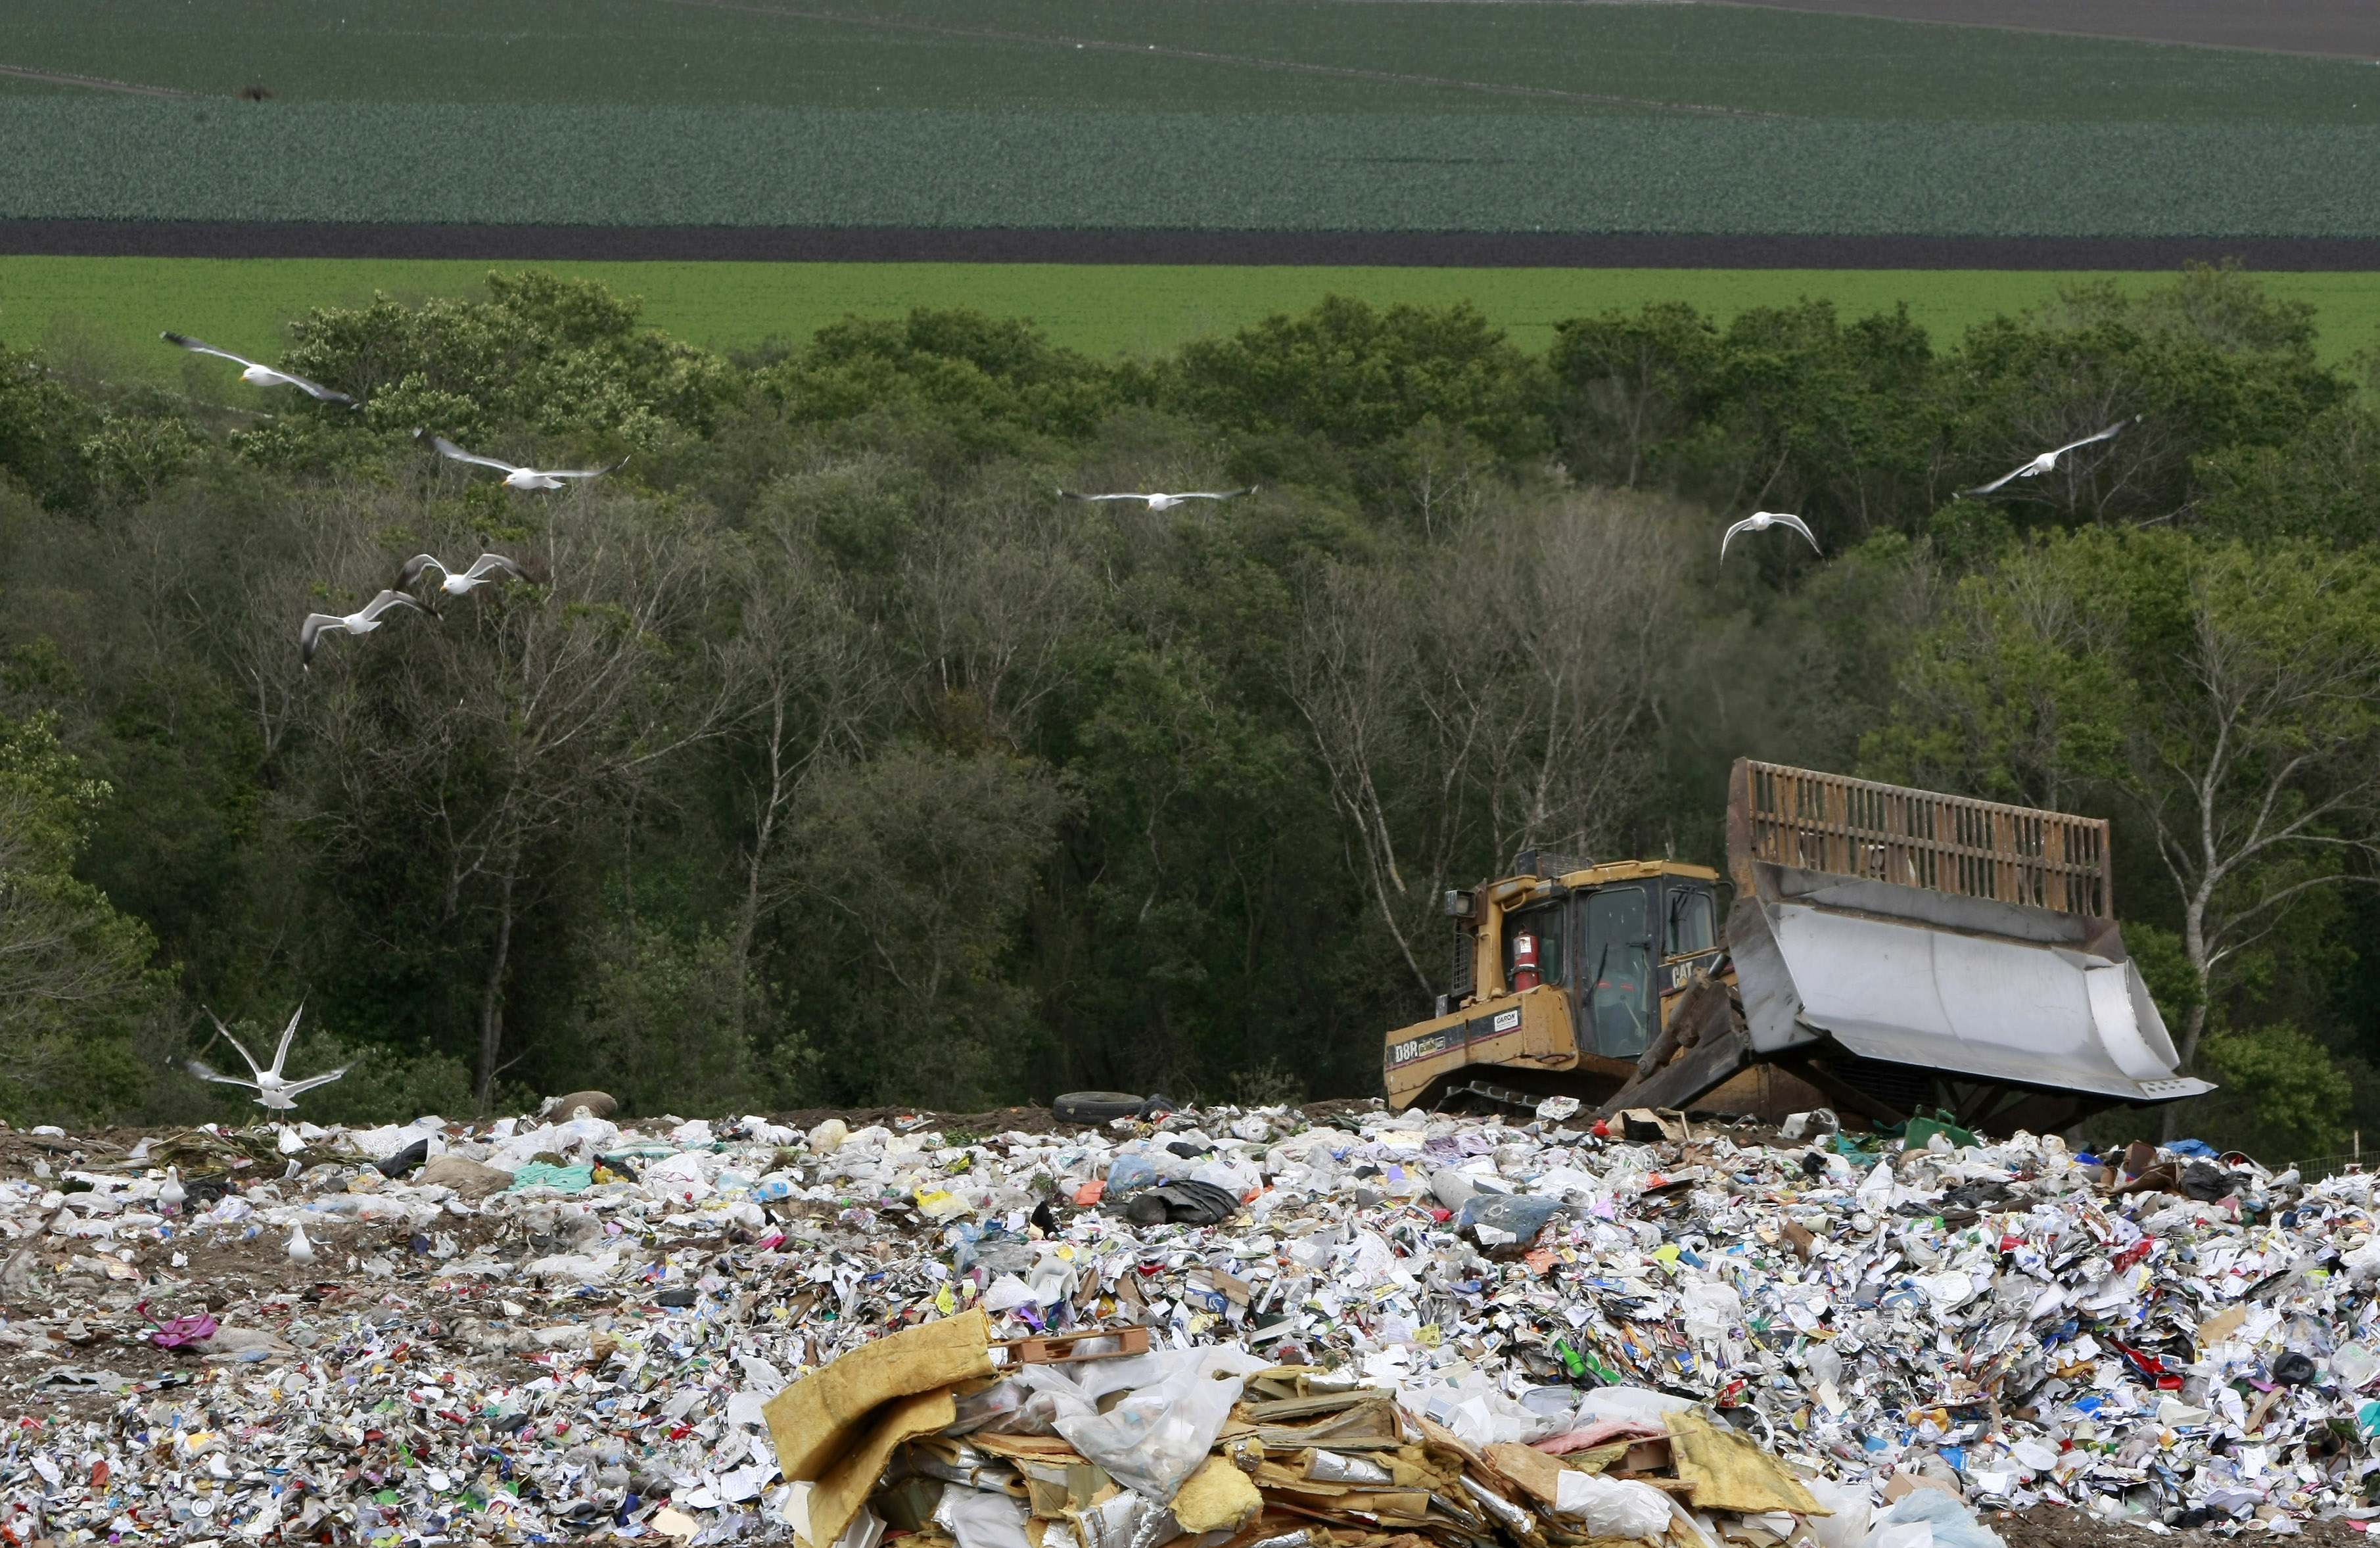 a study on landfills Solid waste study: orange county landfill began operations in 1971 and currently accepts approximately 2,000 tons of waste per day the landfill site encompasses 5,000 acres and accepts.